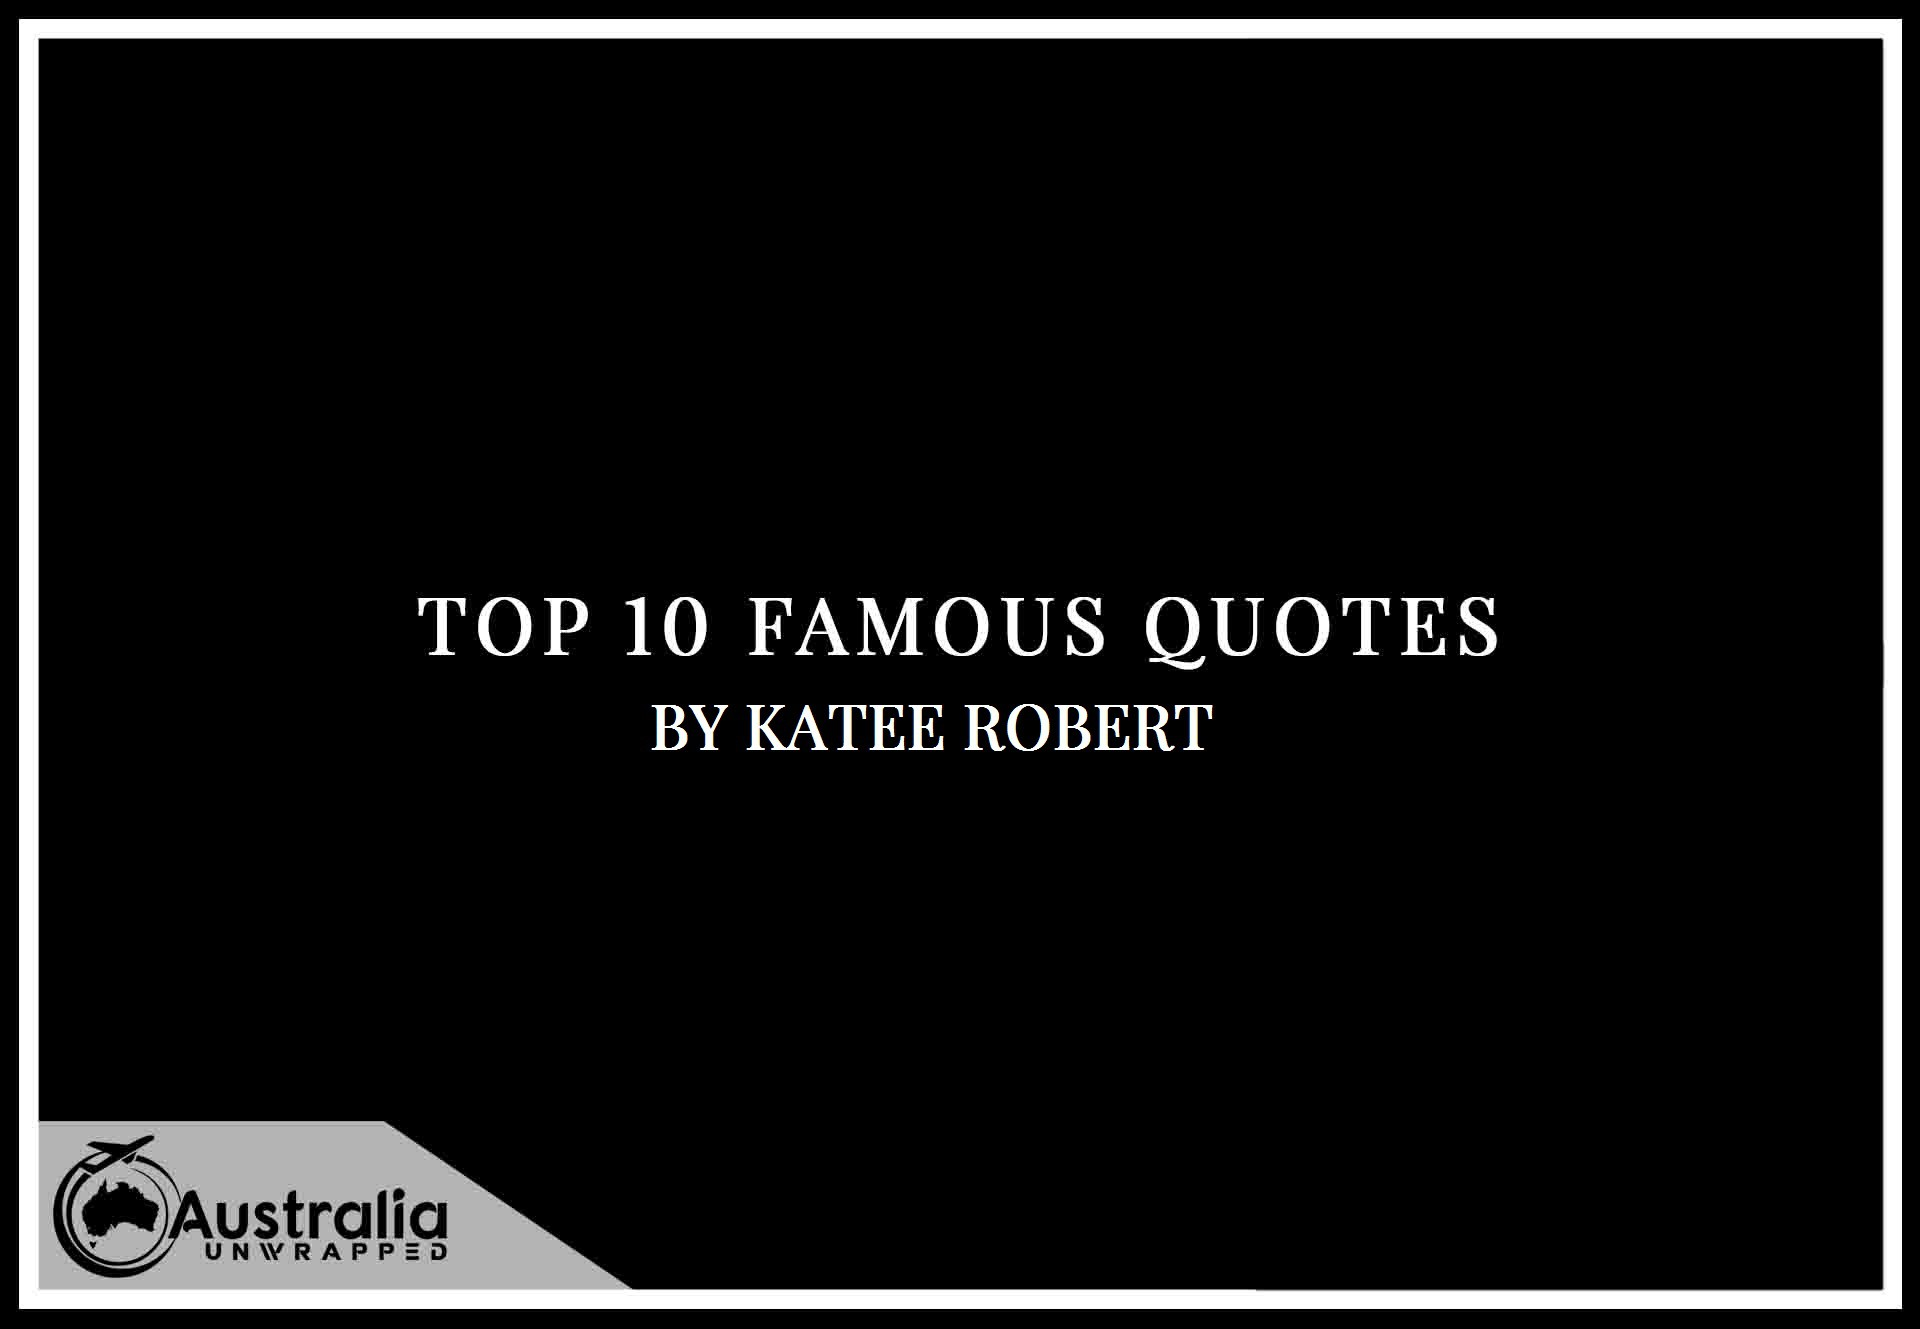 Katee Robert's Top 10 Popular and Famous Quotes